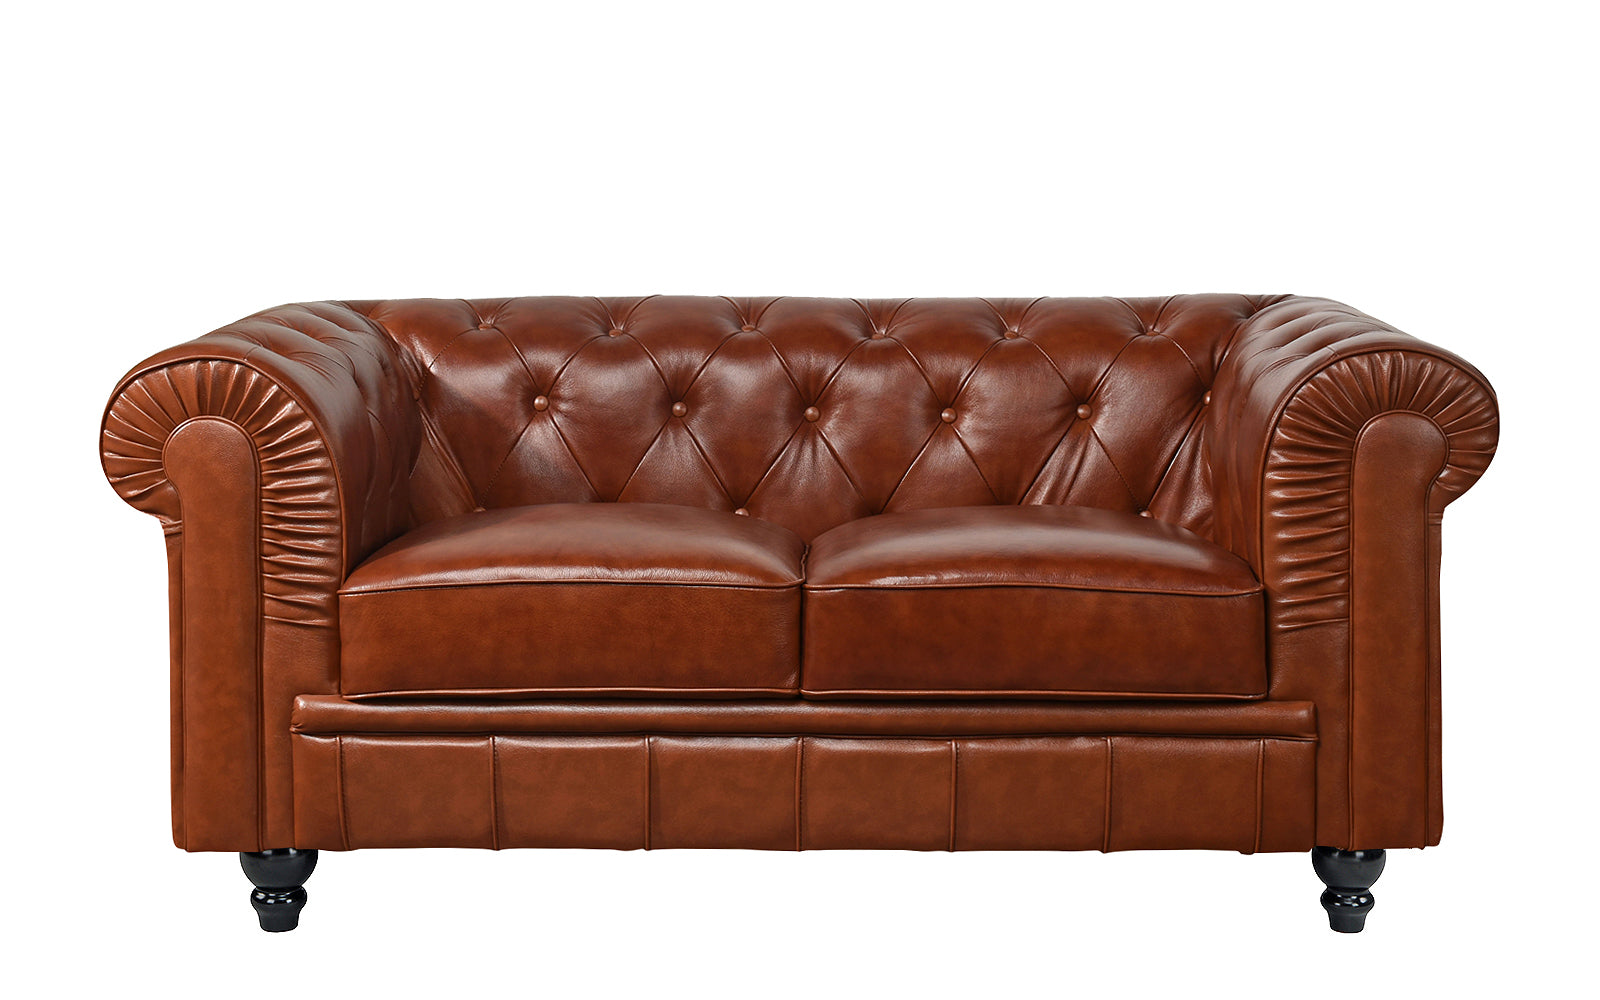 Leather Loveseat Image